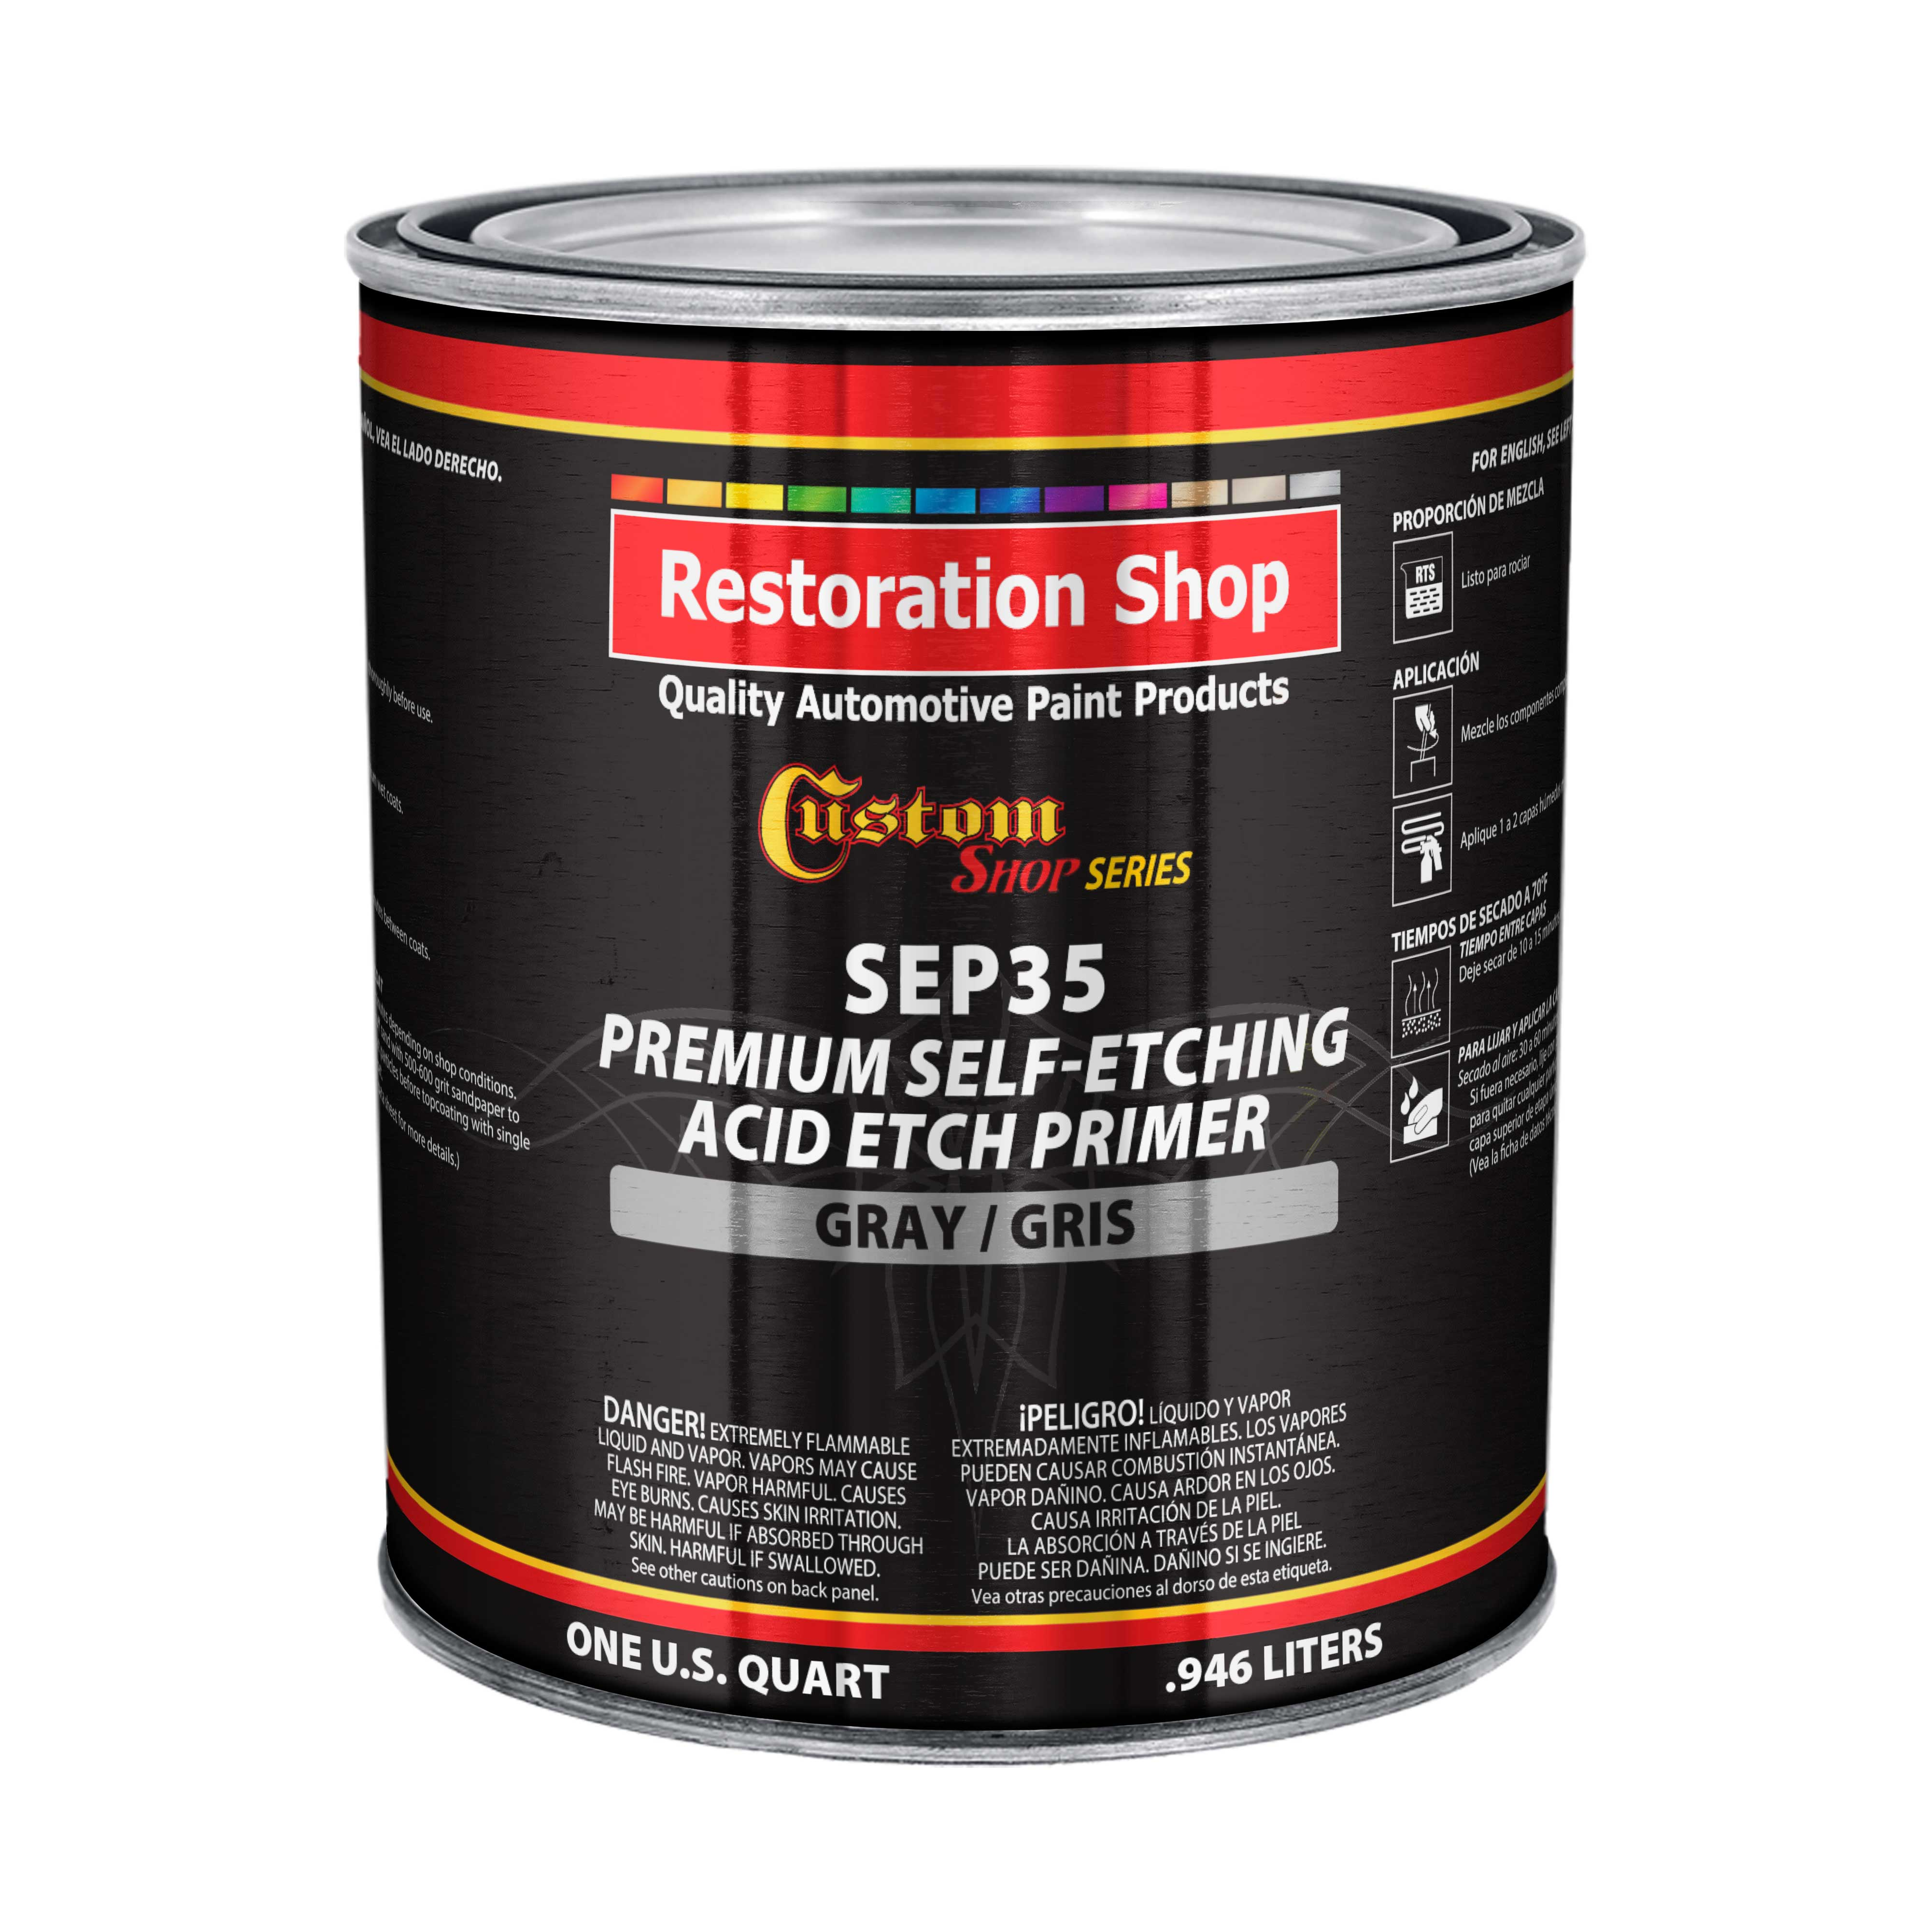 Custom Shop Premium Self Etching Acid Etch Primer, 1 Quart - Ready to Spray Paint, Excellent Adhesion to Bare Metal, Steel, Aluminum, Fiberglass - Use on Automotive Car Parts, OEM Industrial Coating